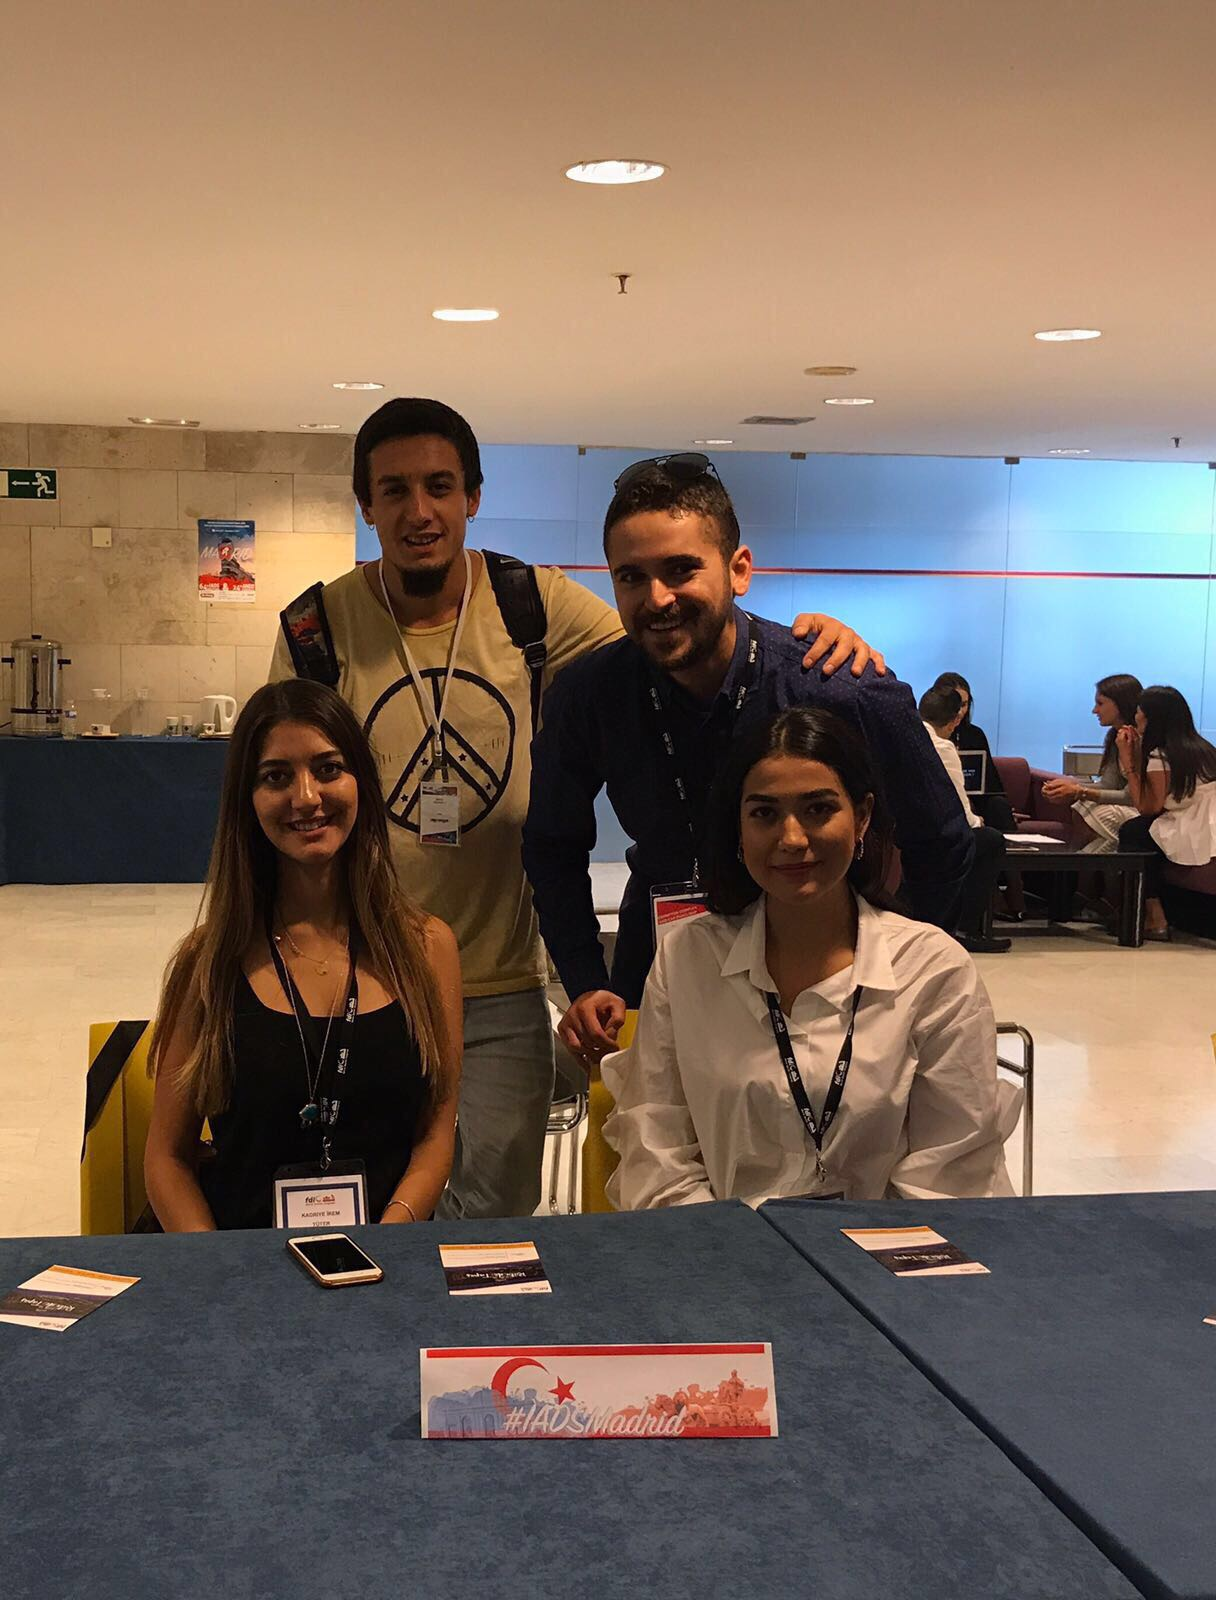 Participating in the Annual Meeting of International Association of Dental Students (IADS), the Near East University Represented Turkish Republic of Northern Cyprus in Madrid